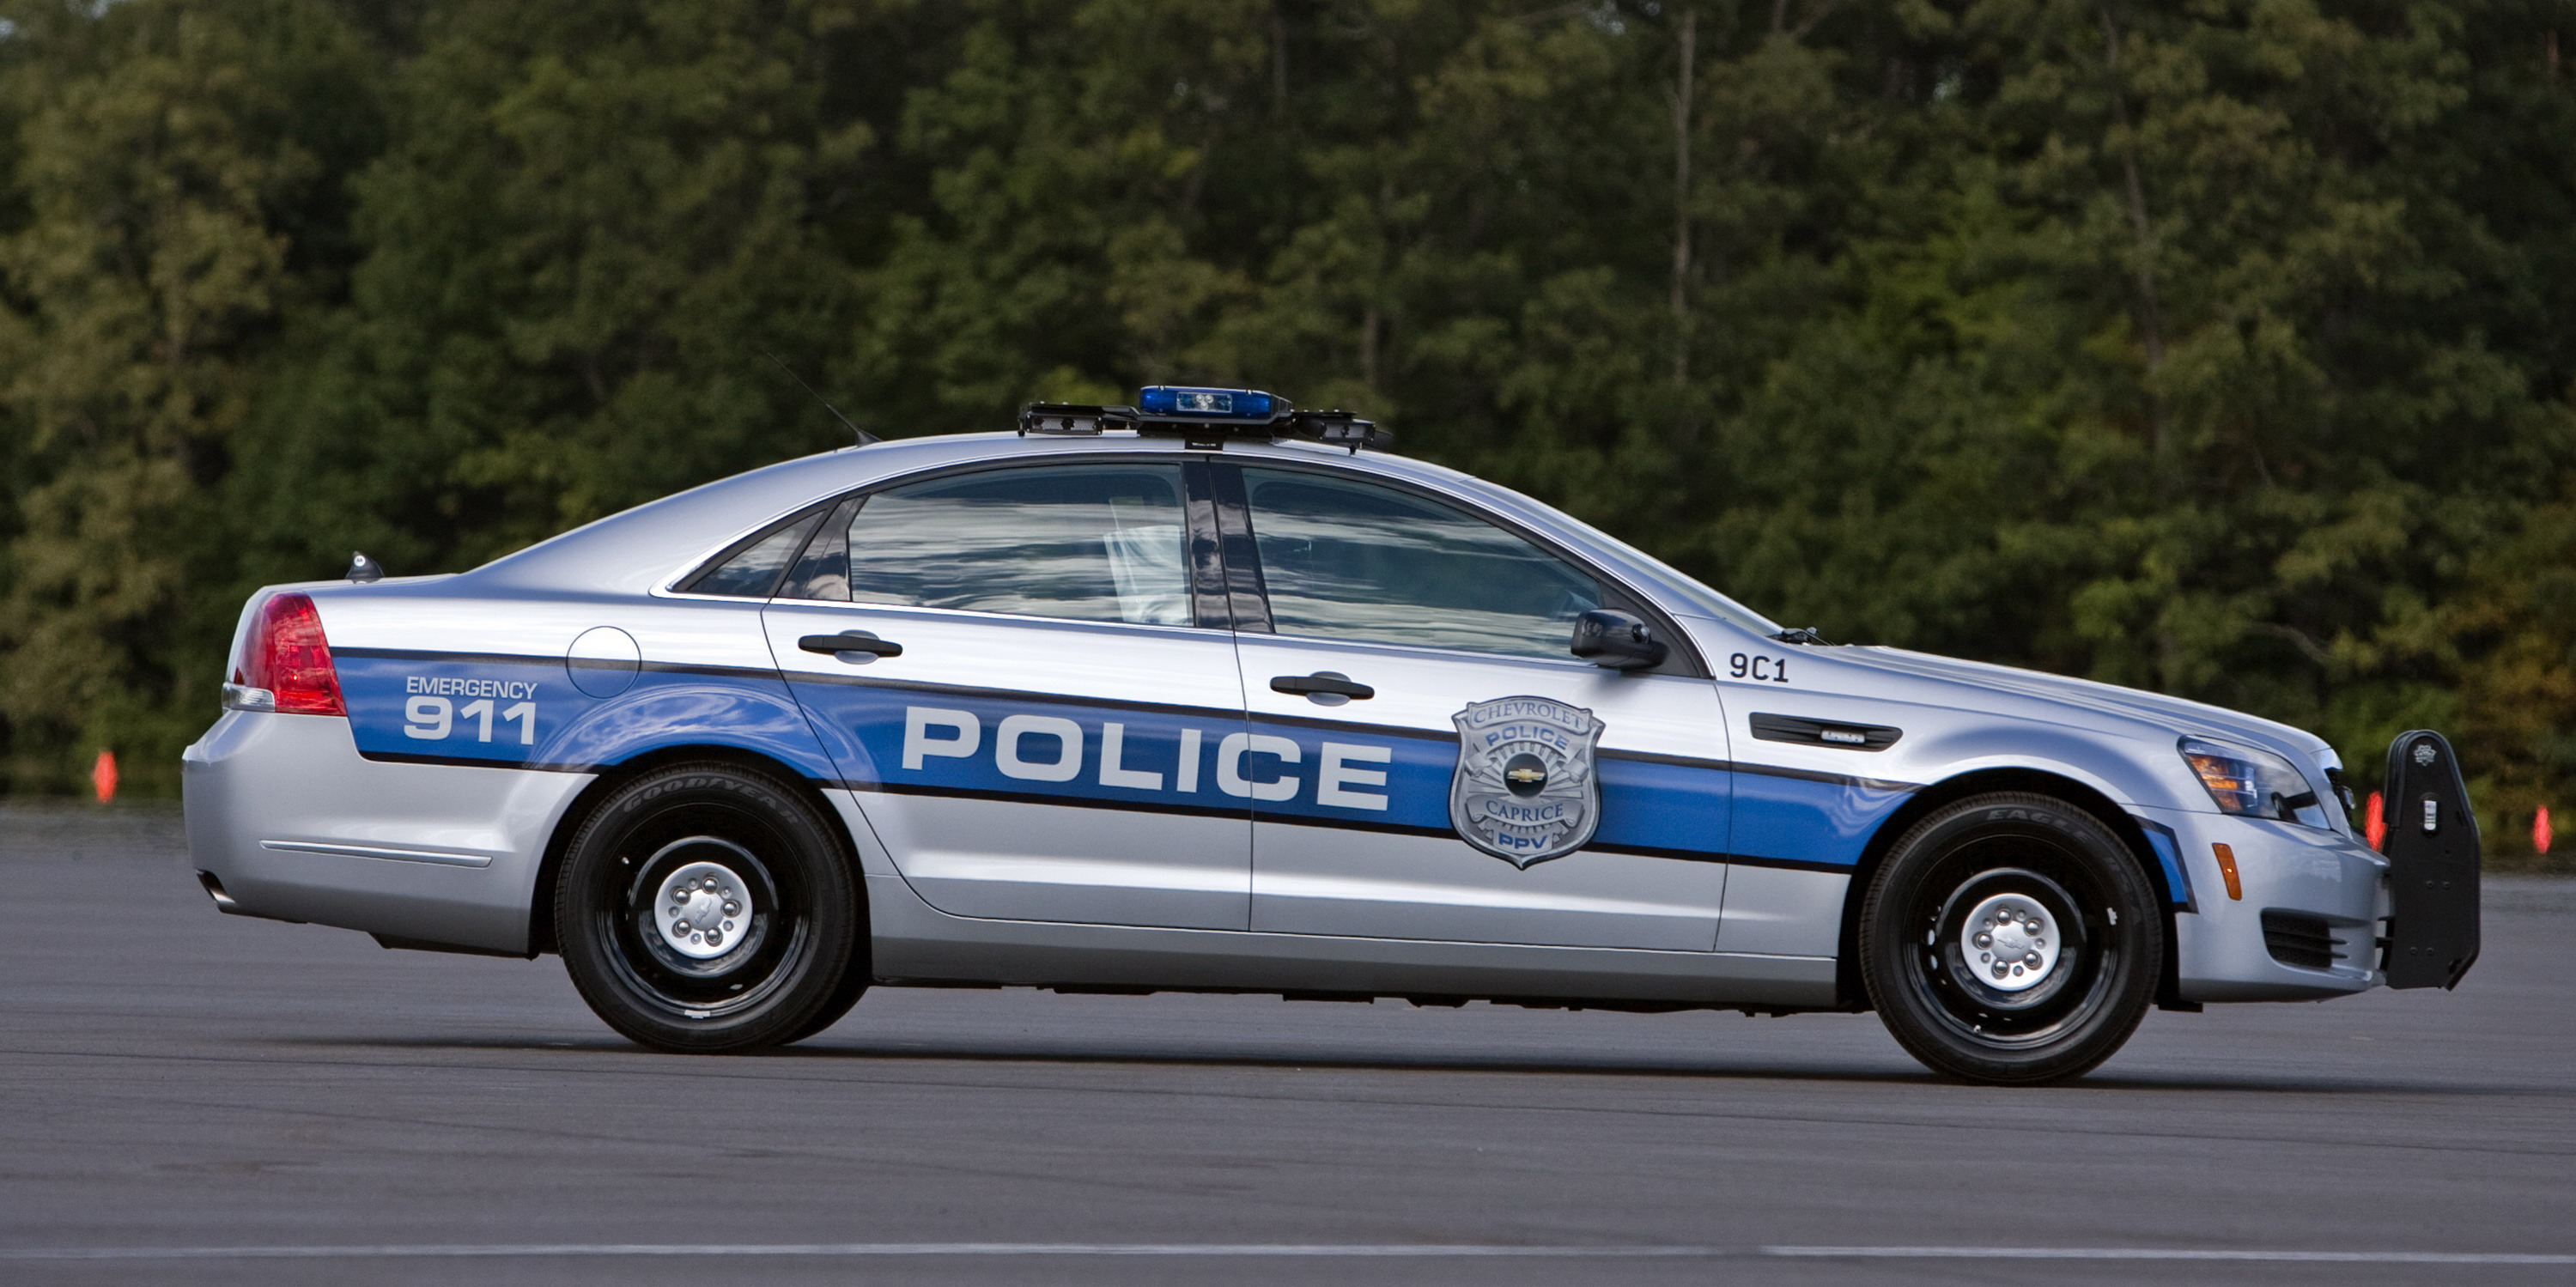 Chevrolet announced the caprice ppv police patrol vehicle back in 2009 and since then it became one of the most appreciated police cars for the 2014